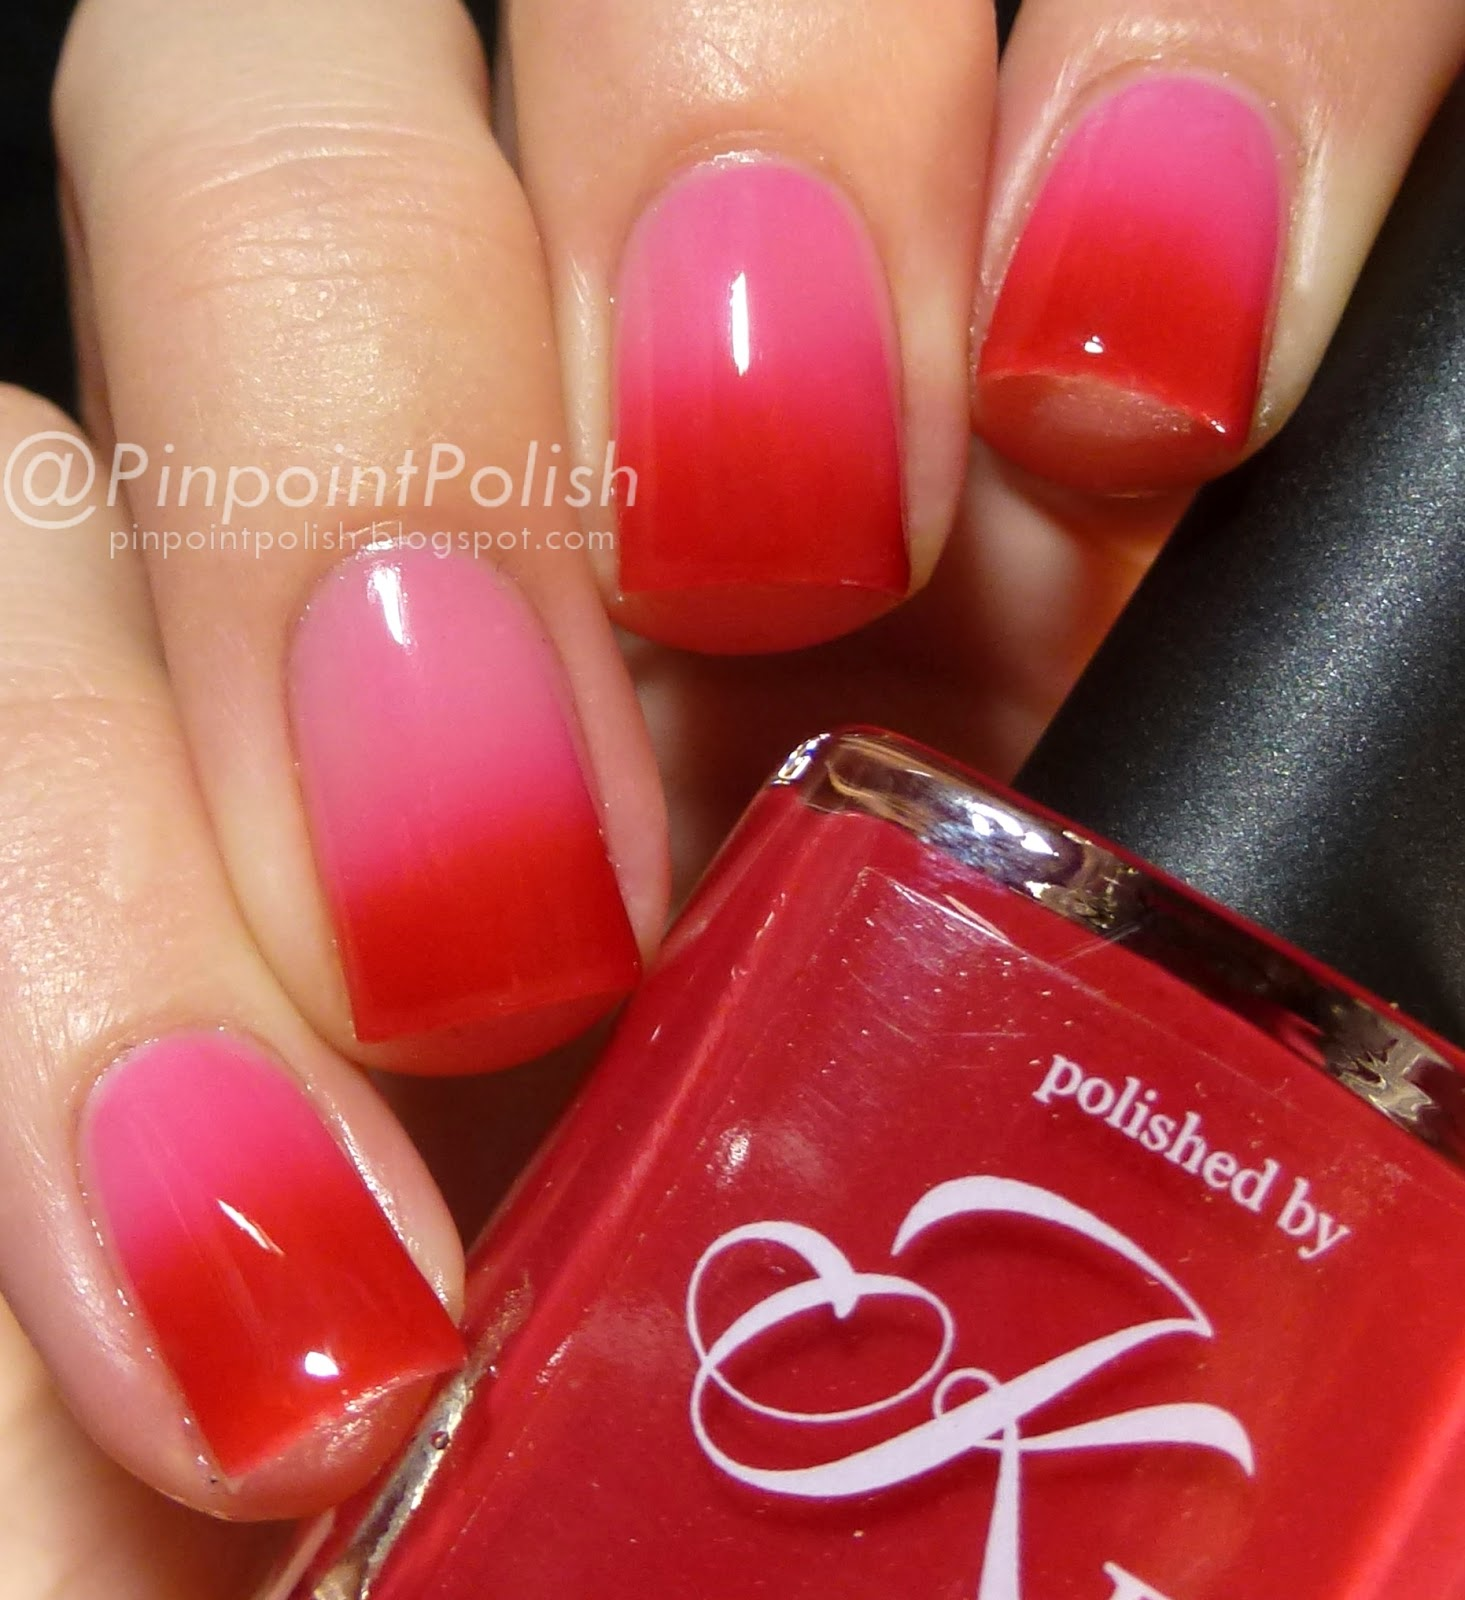 Camellia, Polished by KPT, swatch